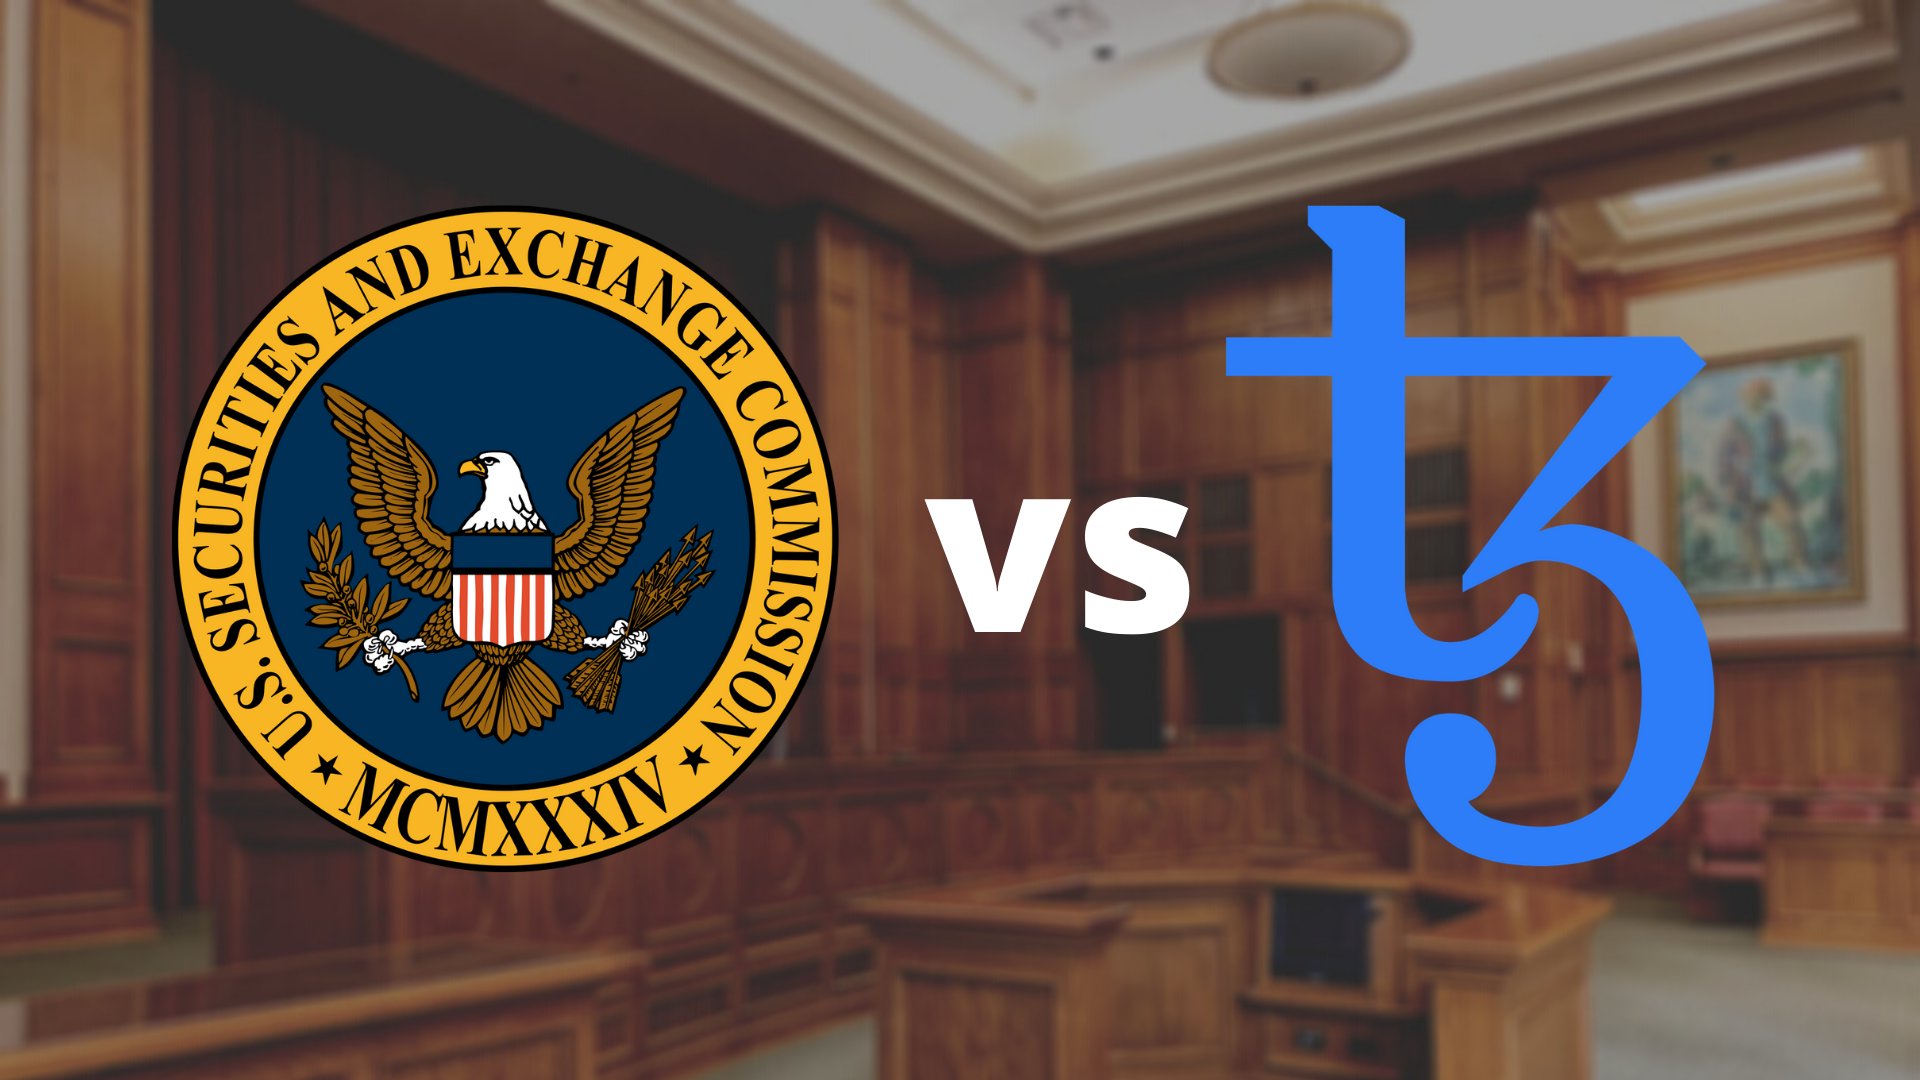 Tezos can settle ICO related lawsuit for $25 million in cash